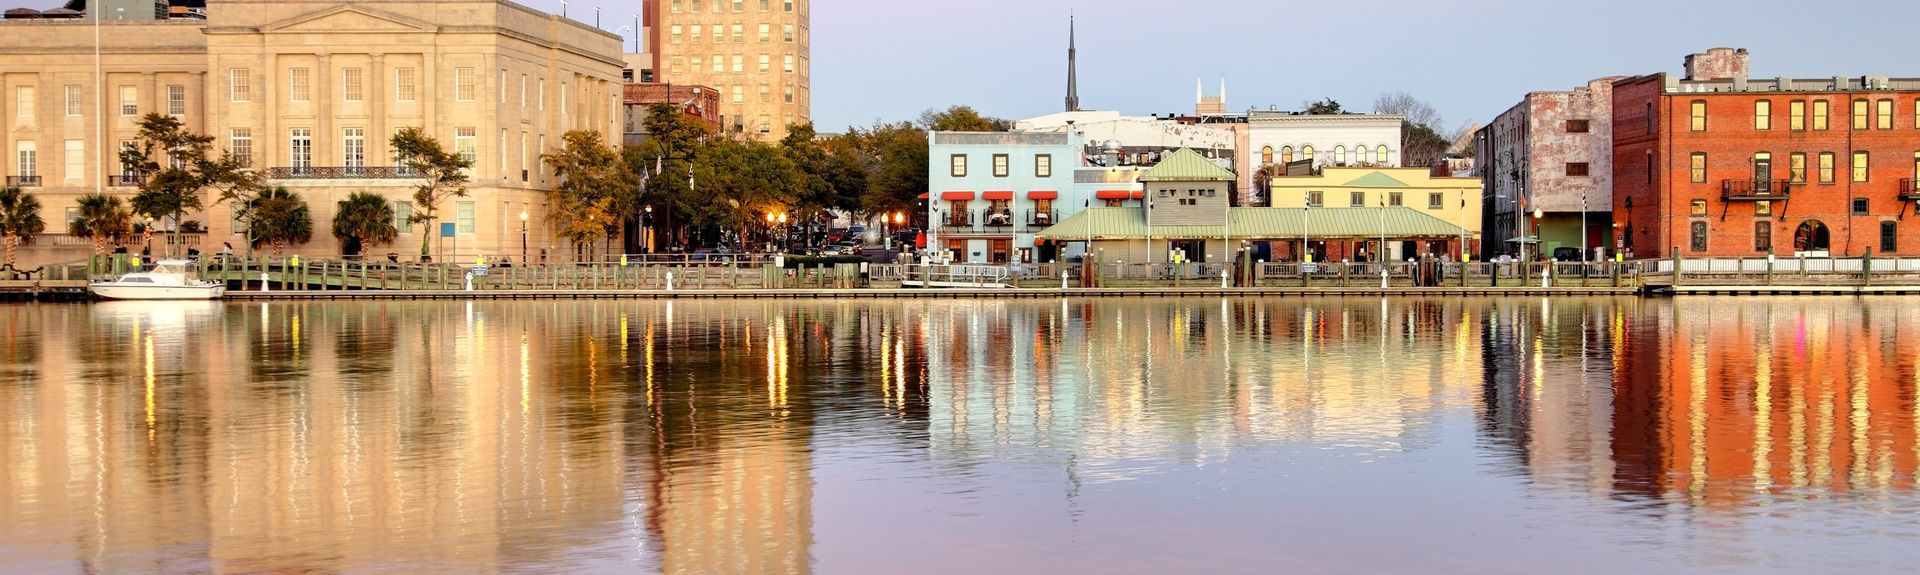 Wilmington, NC, USA